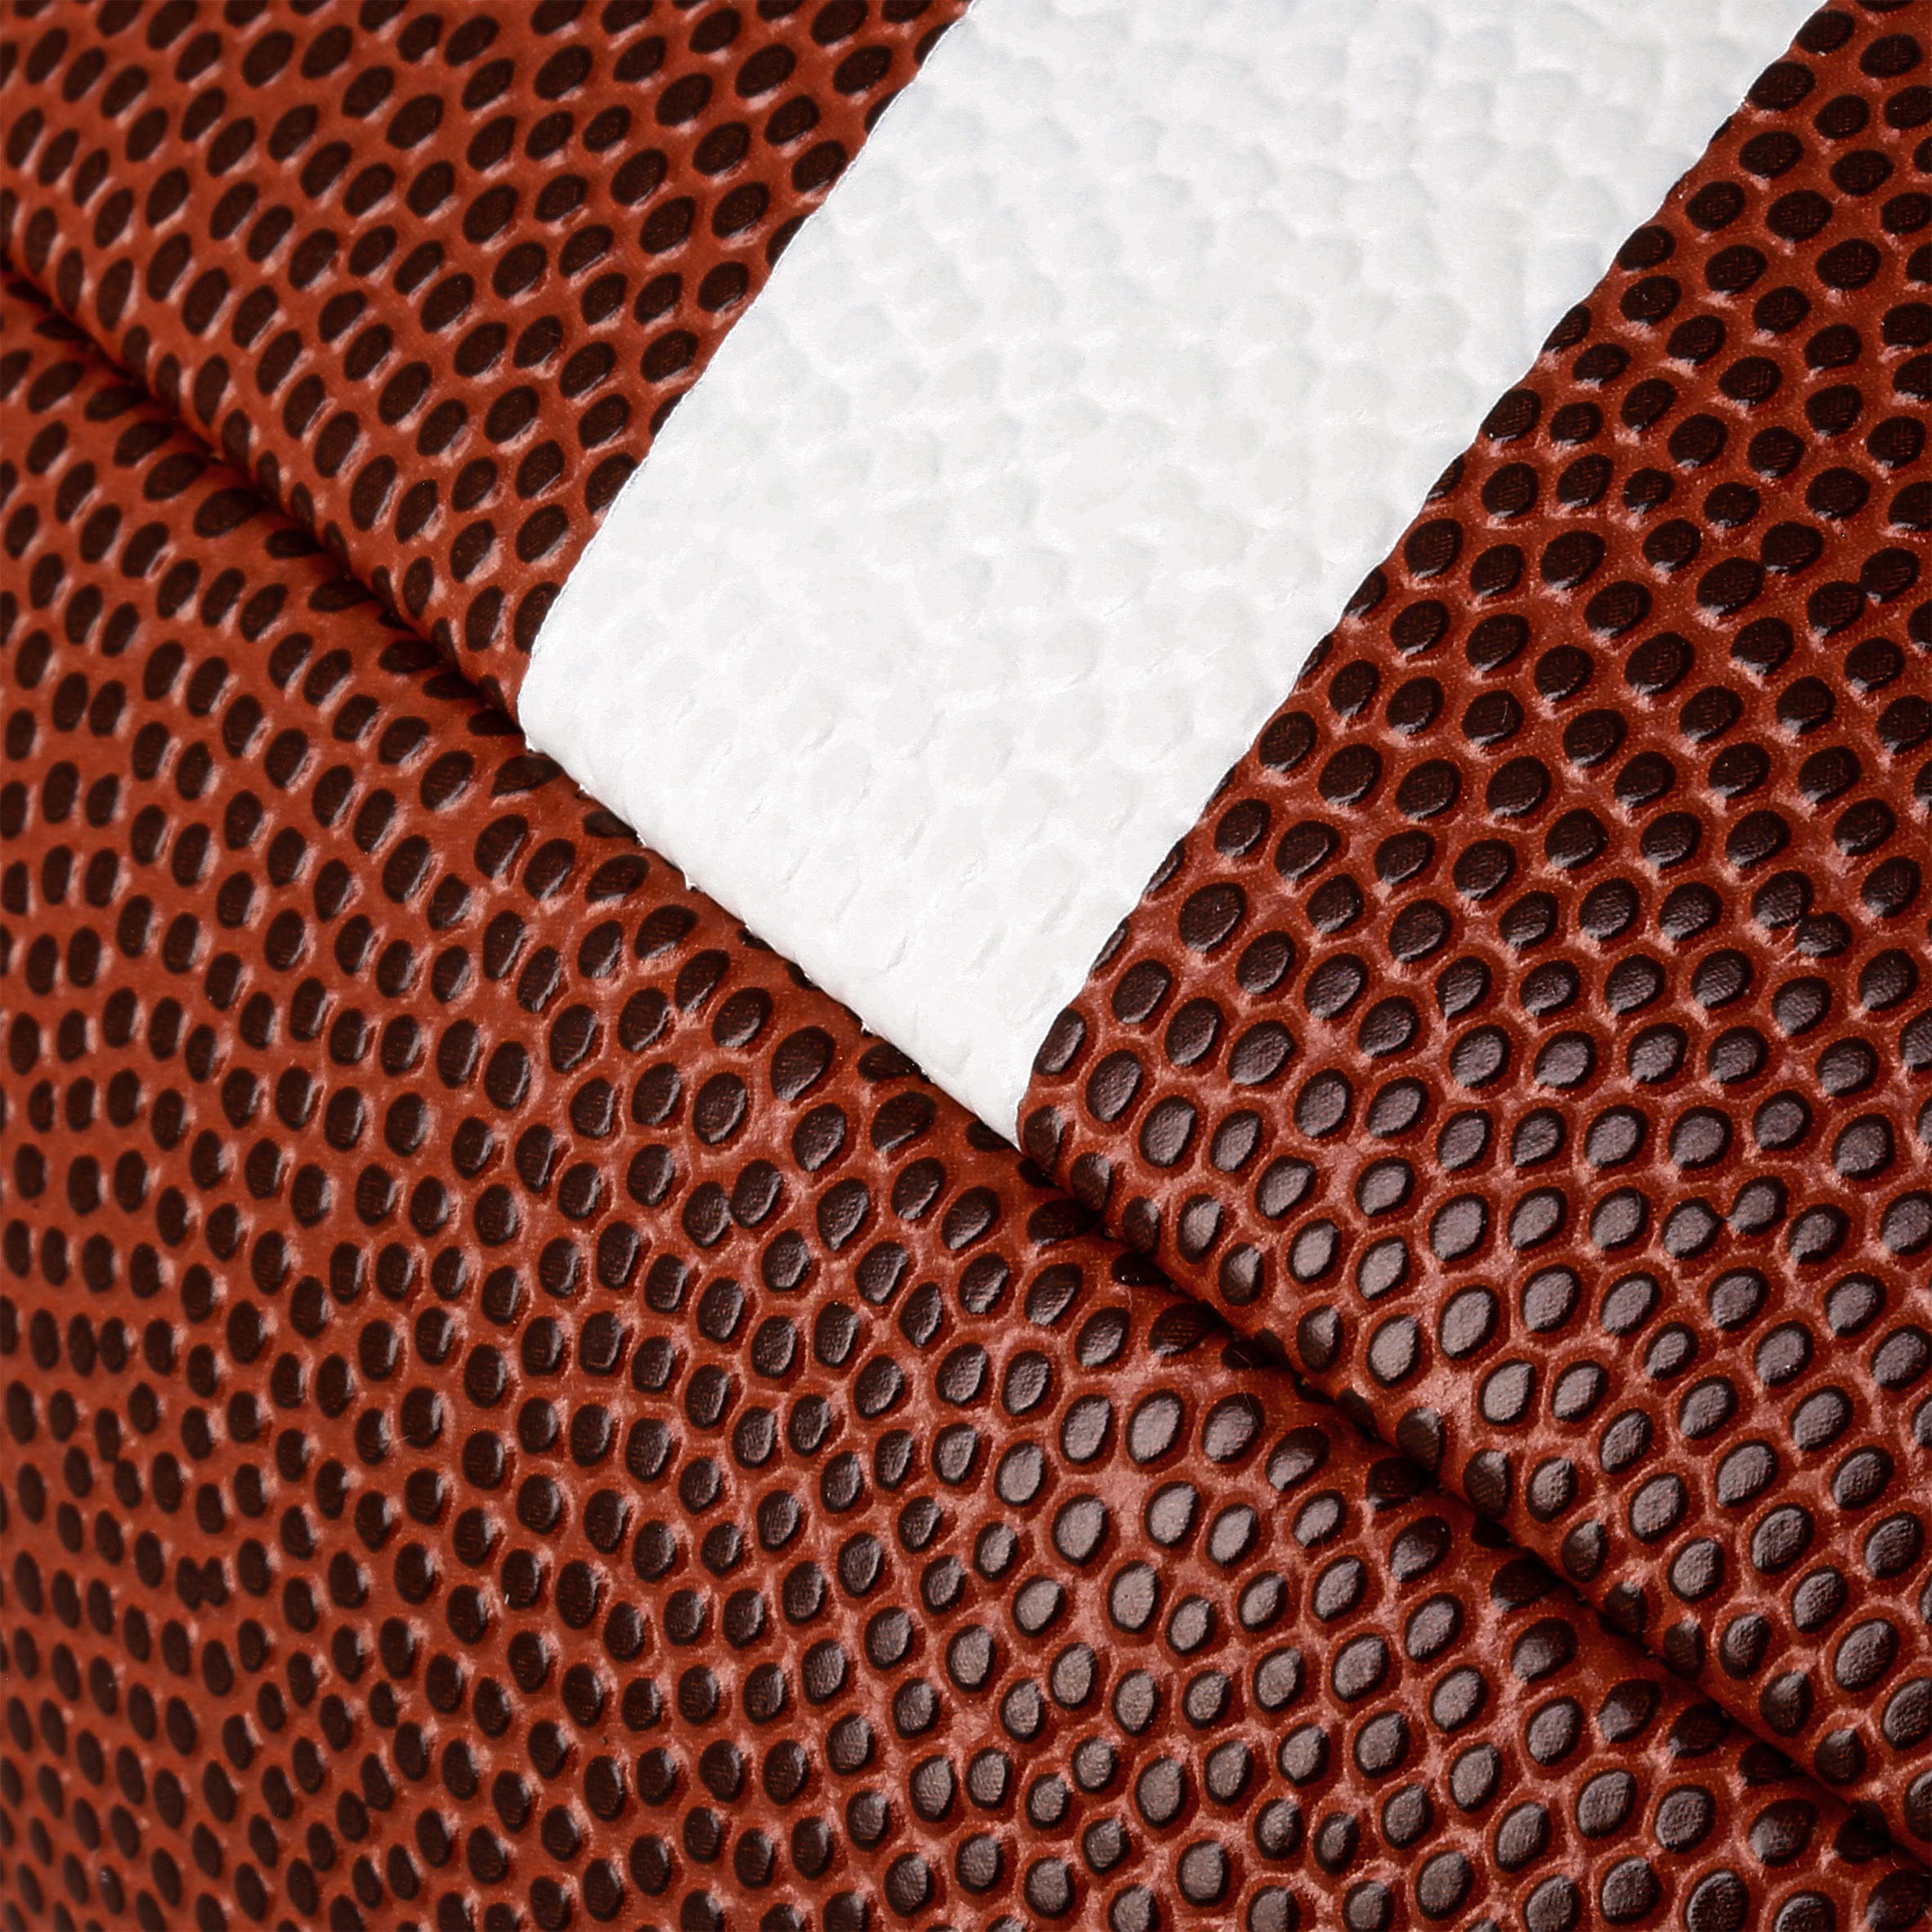 AF500 Official Size American Football - Brown